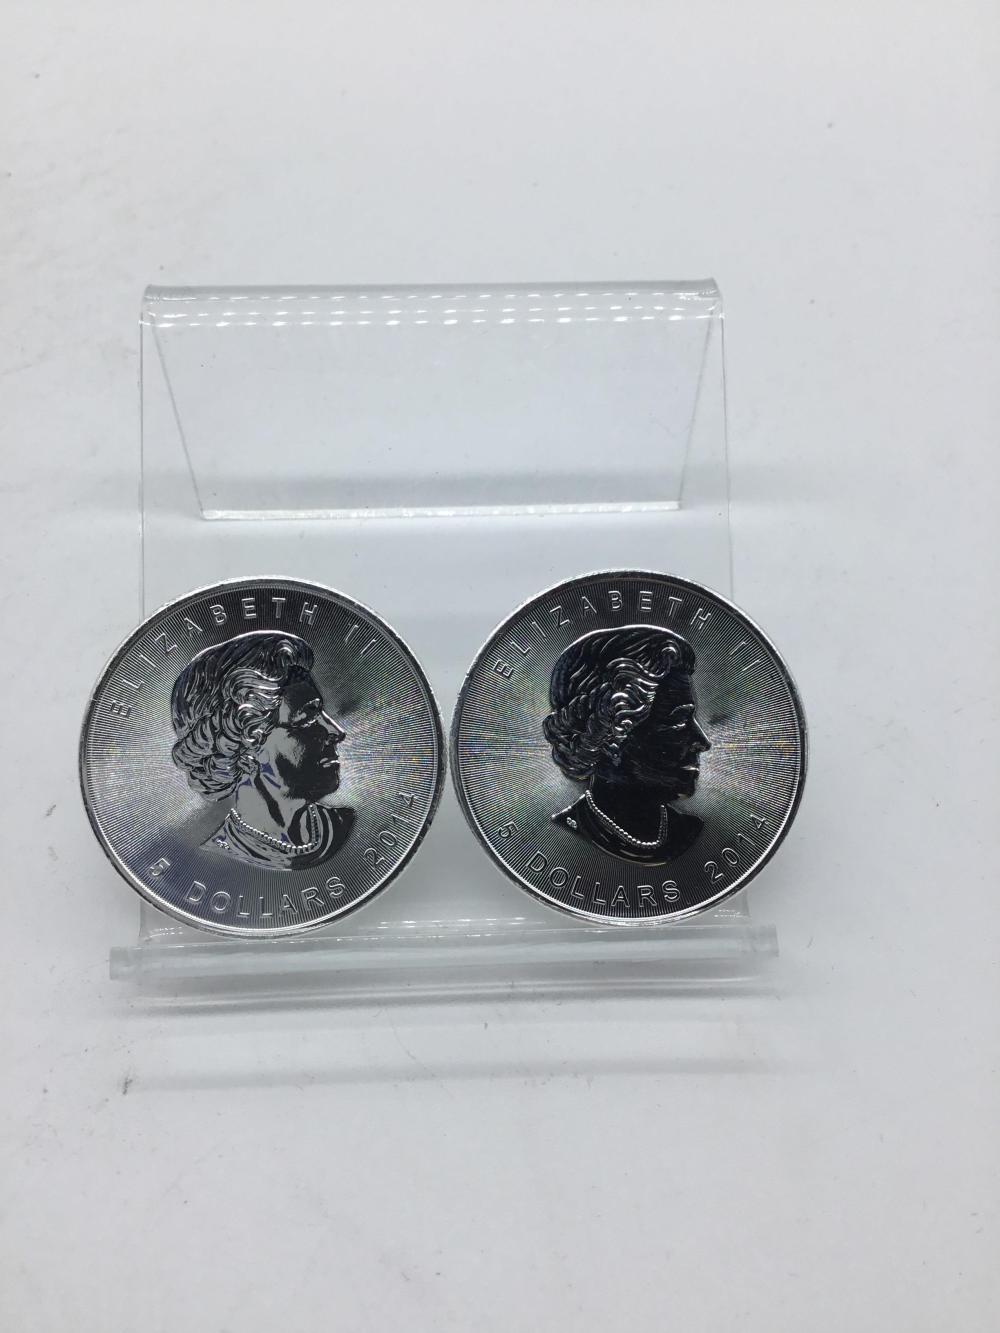 Canadian $5 silver coins